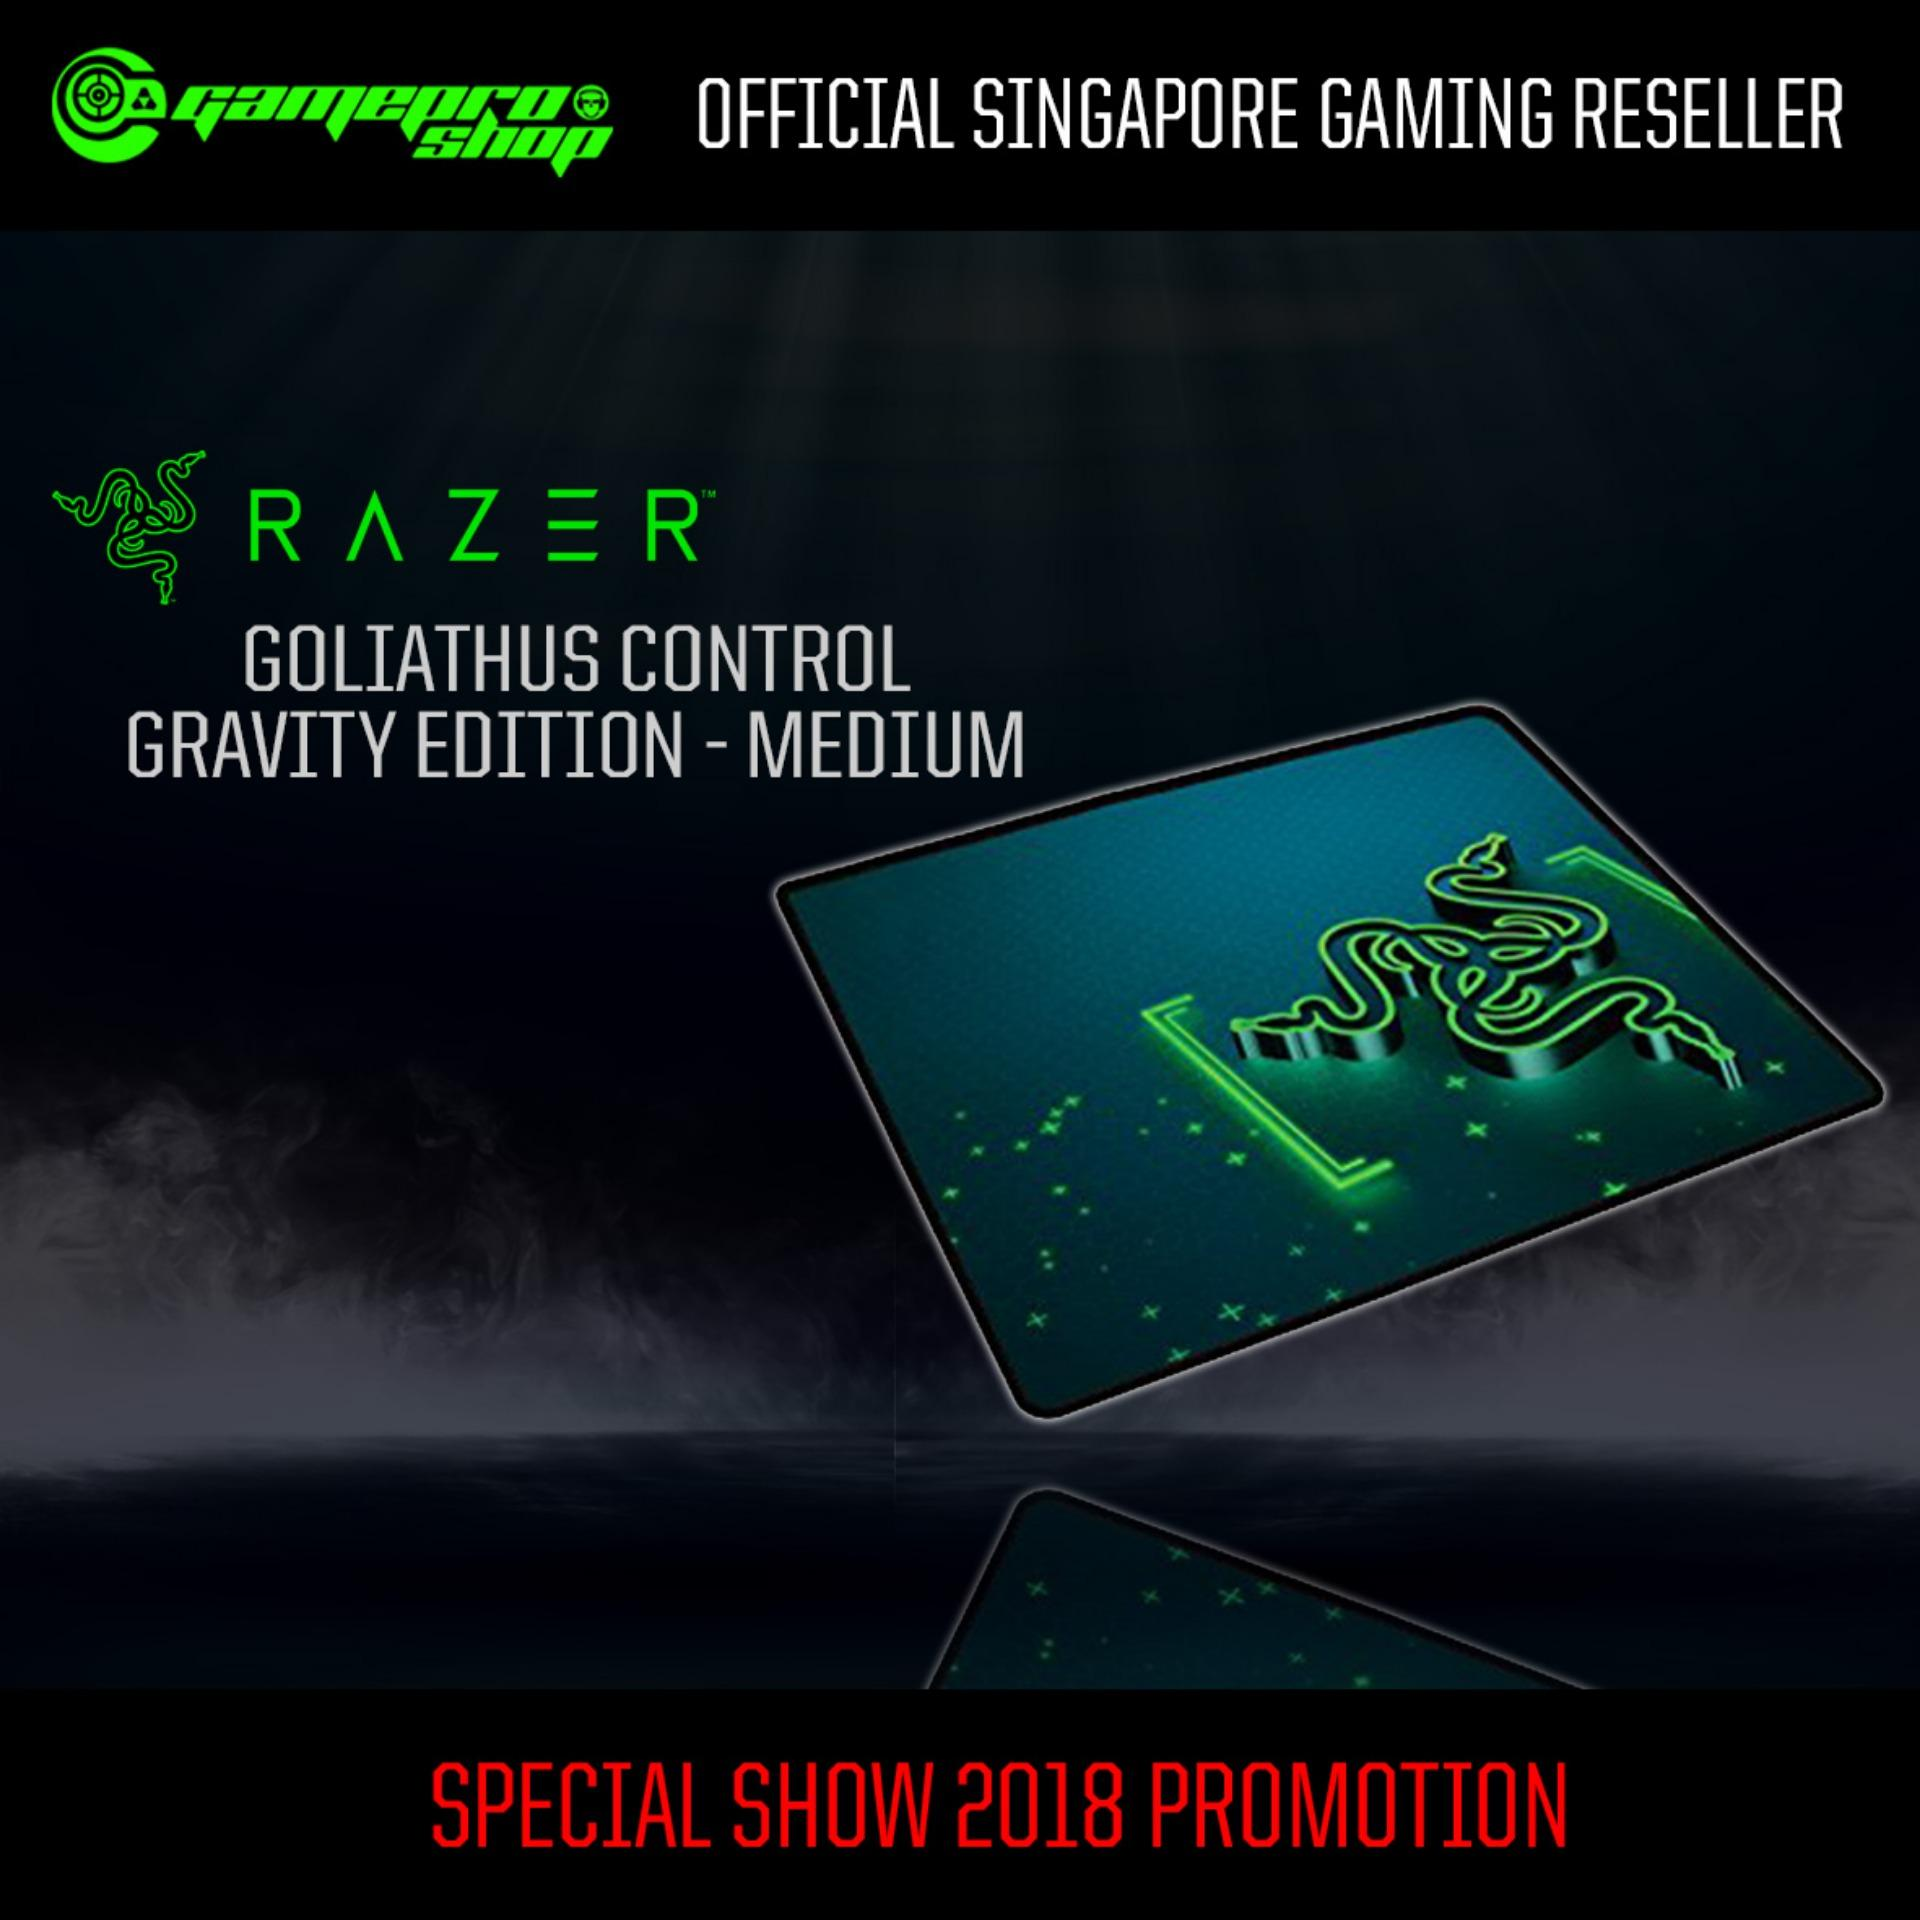 Great Deal Razer Goliathus Control Gravity Edition Medium Gss Promo